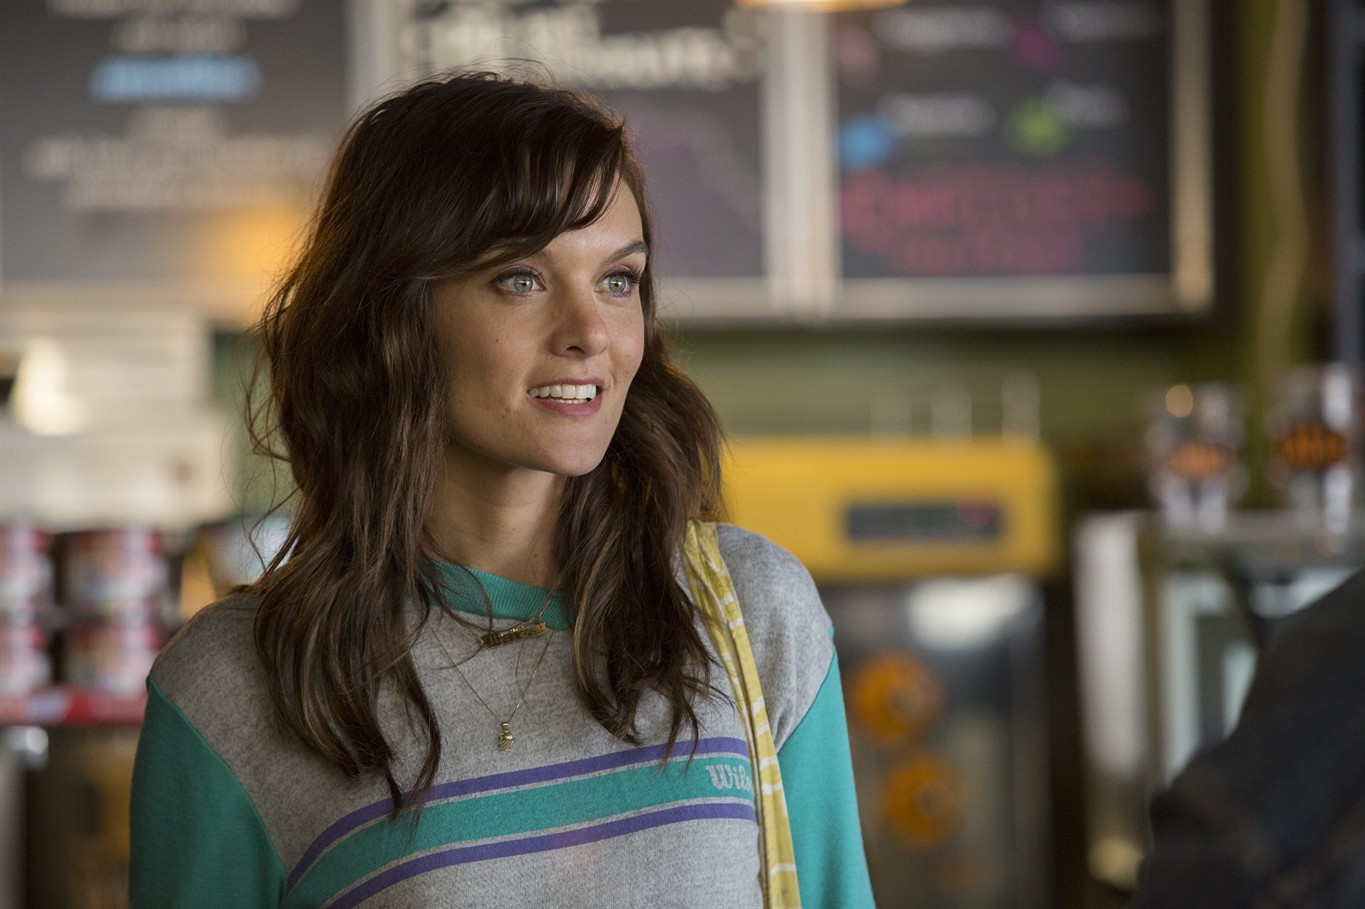 2019 Rachel Frances ?Frankie Shaw nude (74 photos), Sexy, Leaked, Twitter, braless 2017